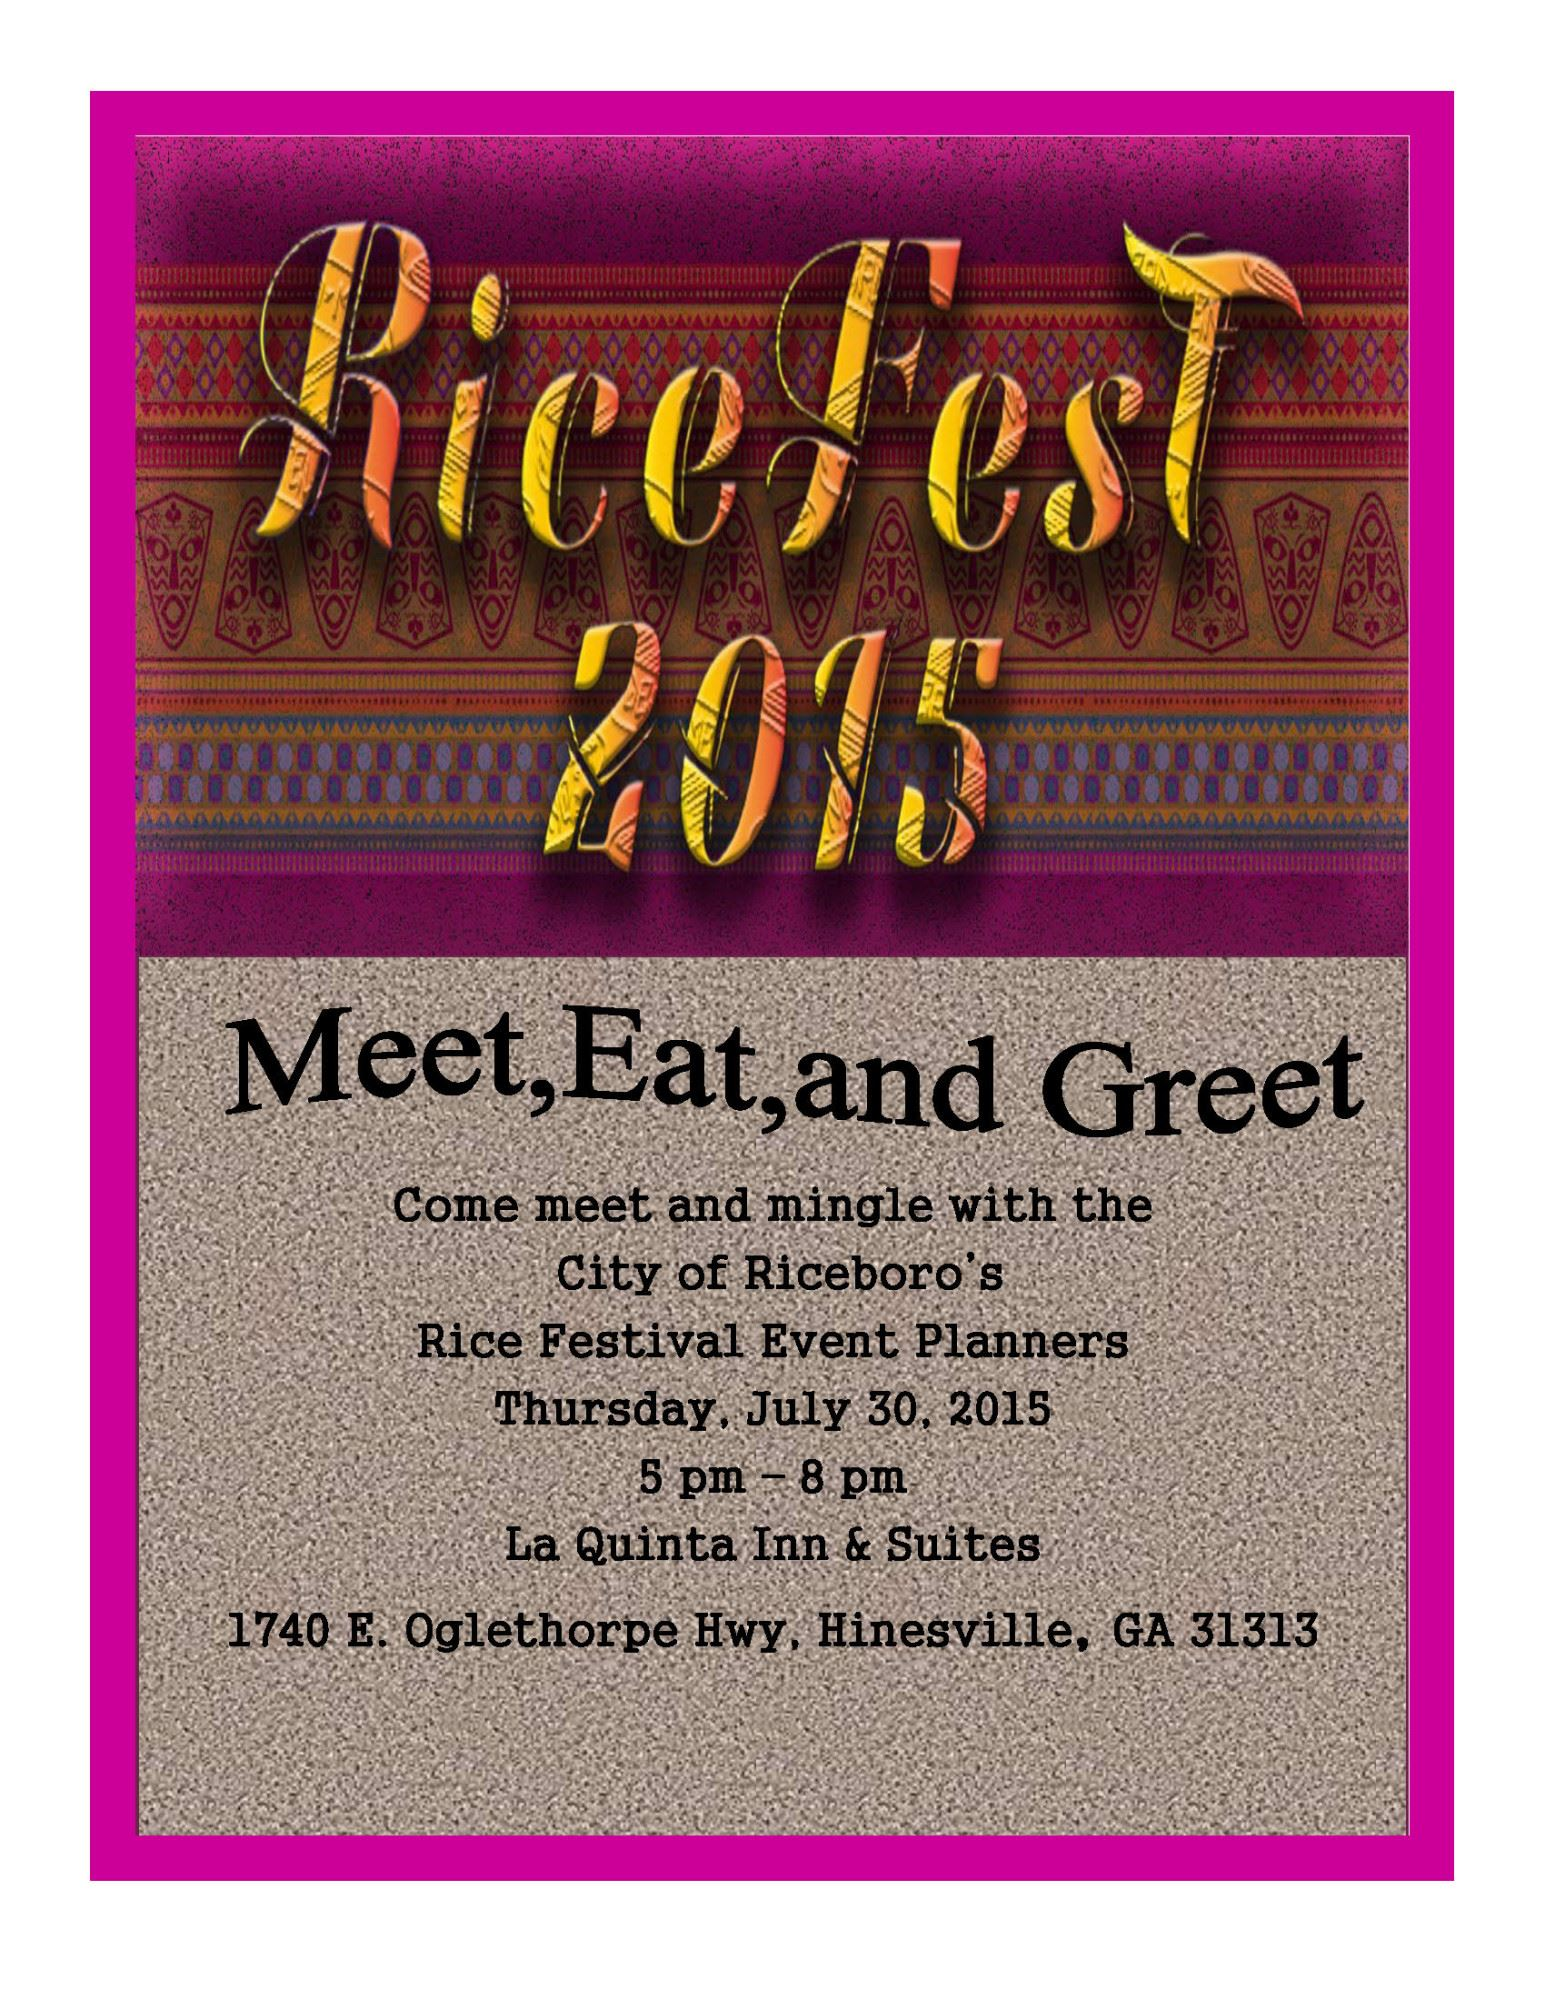 Ricefest 2015 Meet Eat And Greetliberty County Georgia